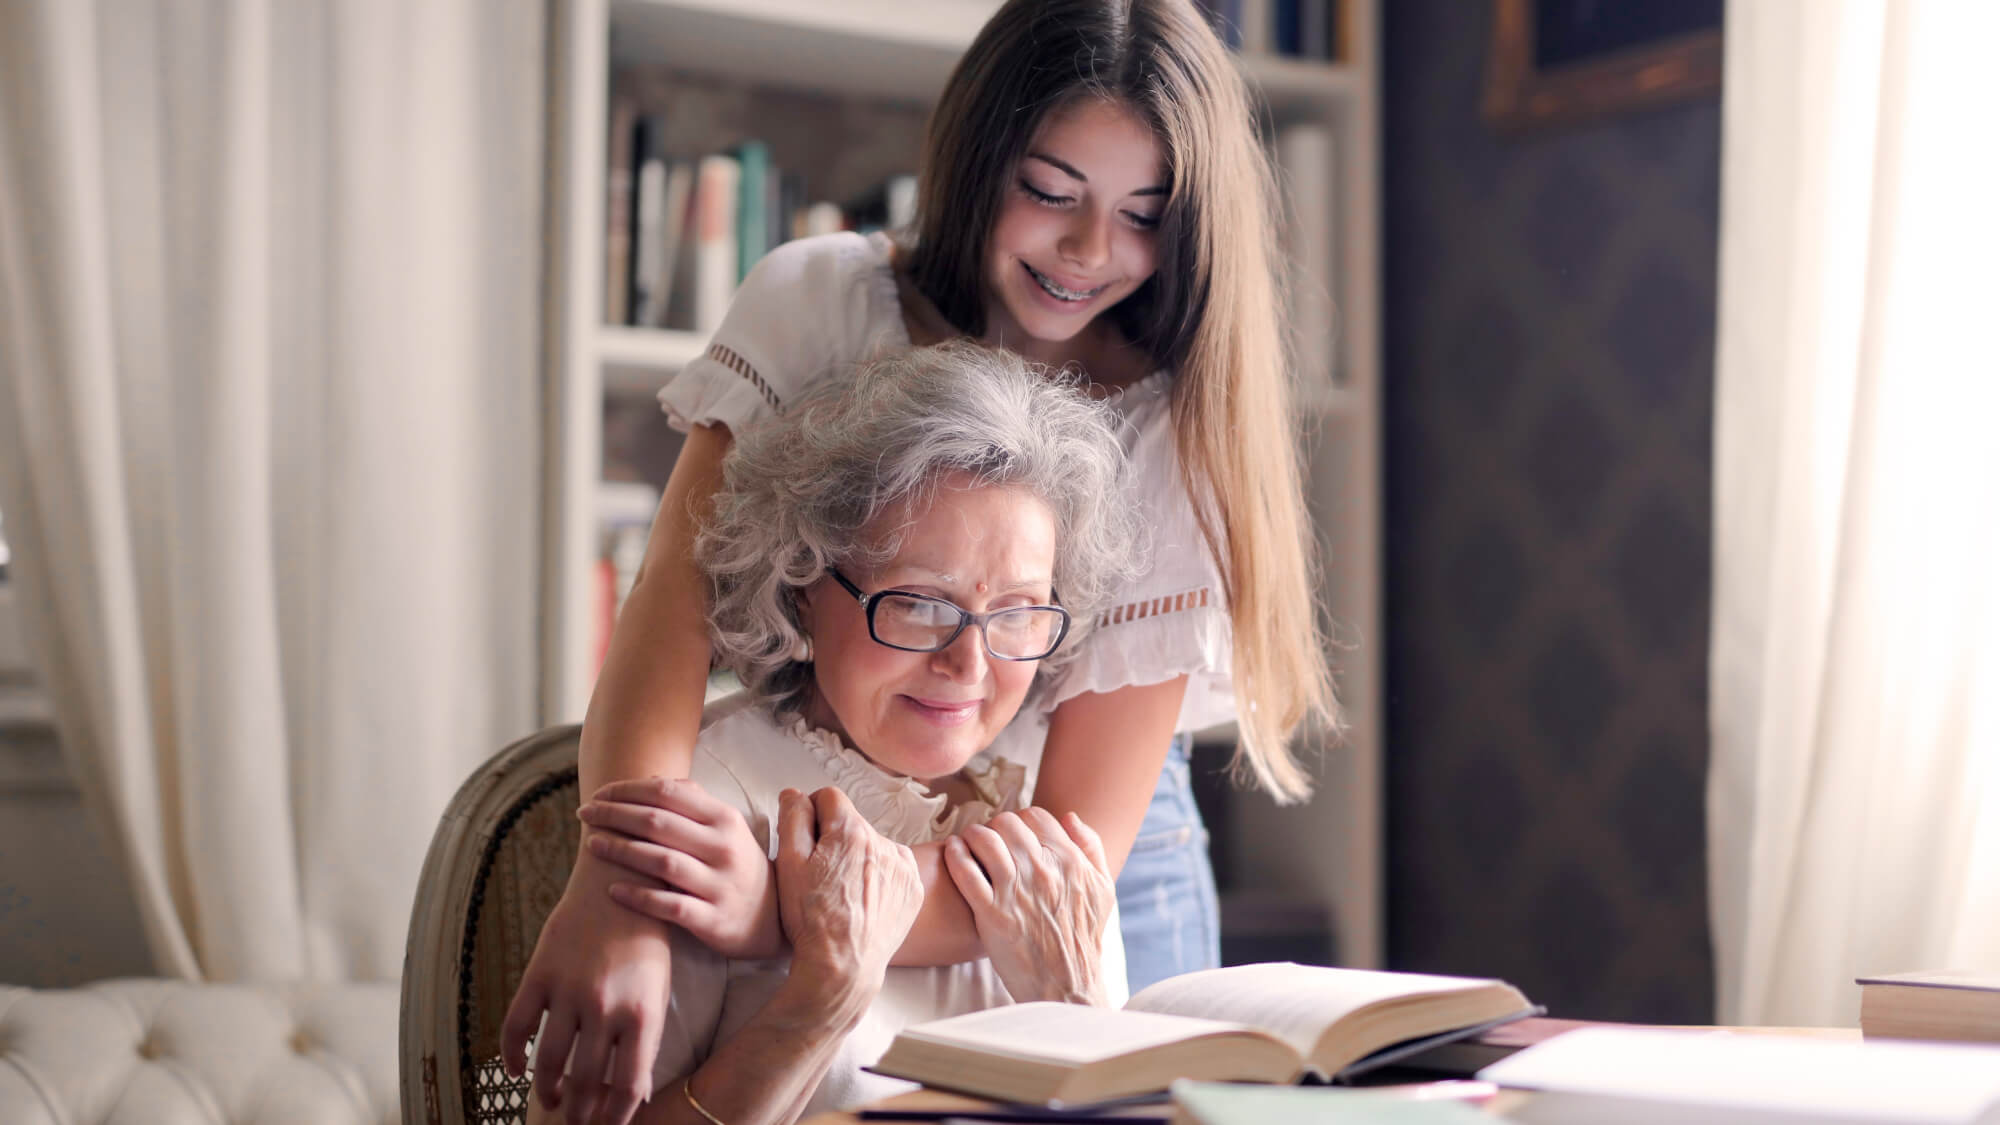 Grandma and granddaughter studying together